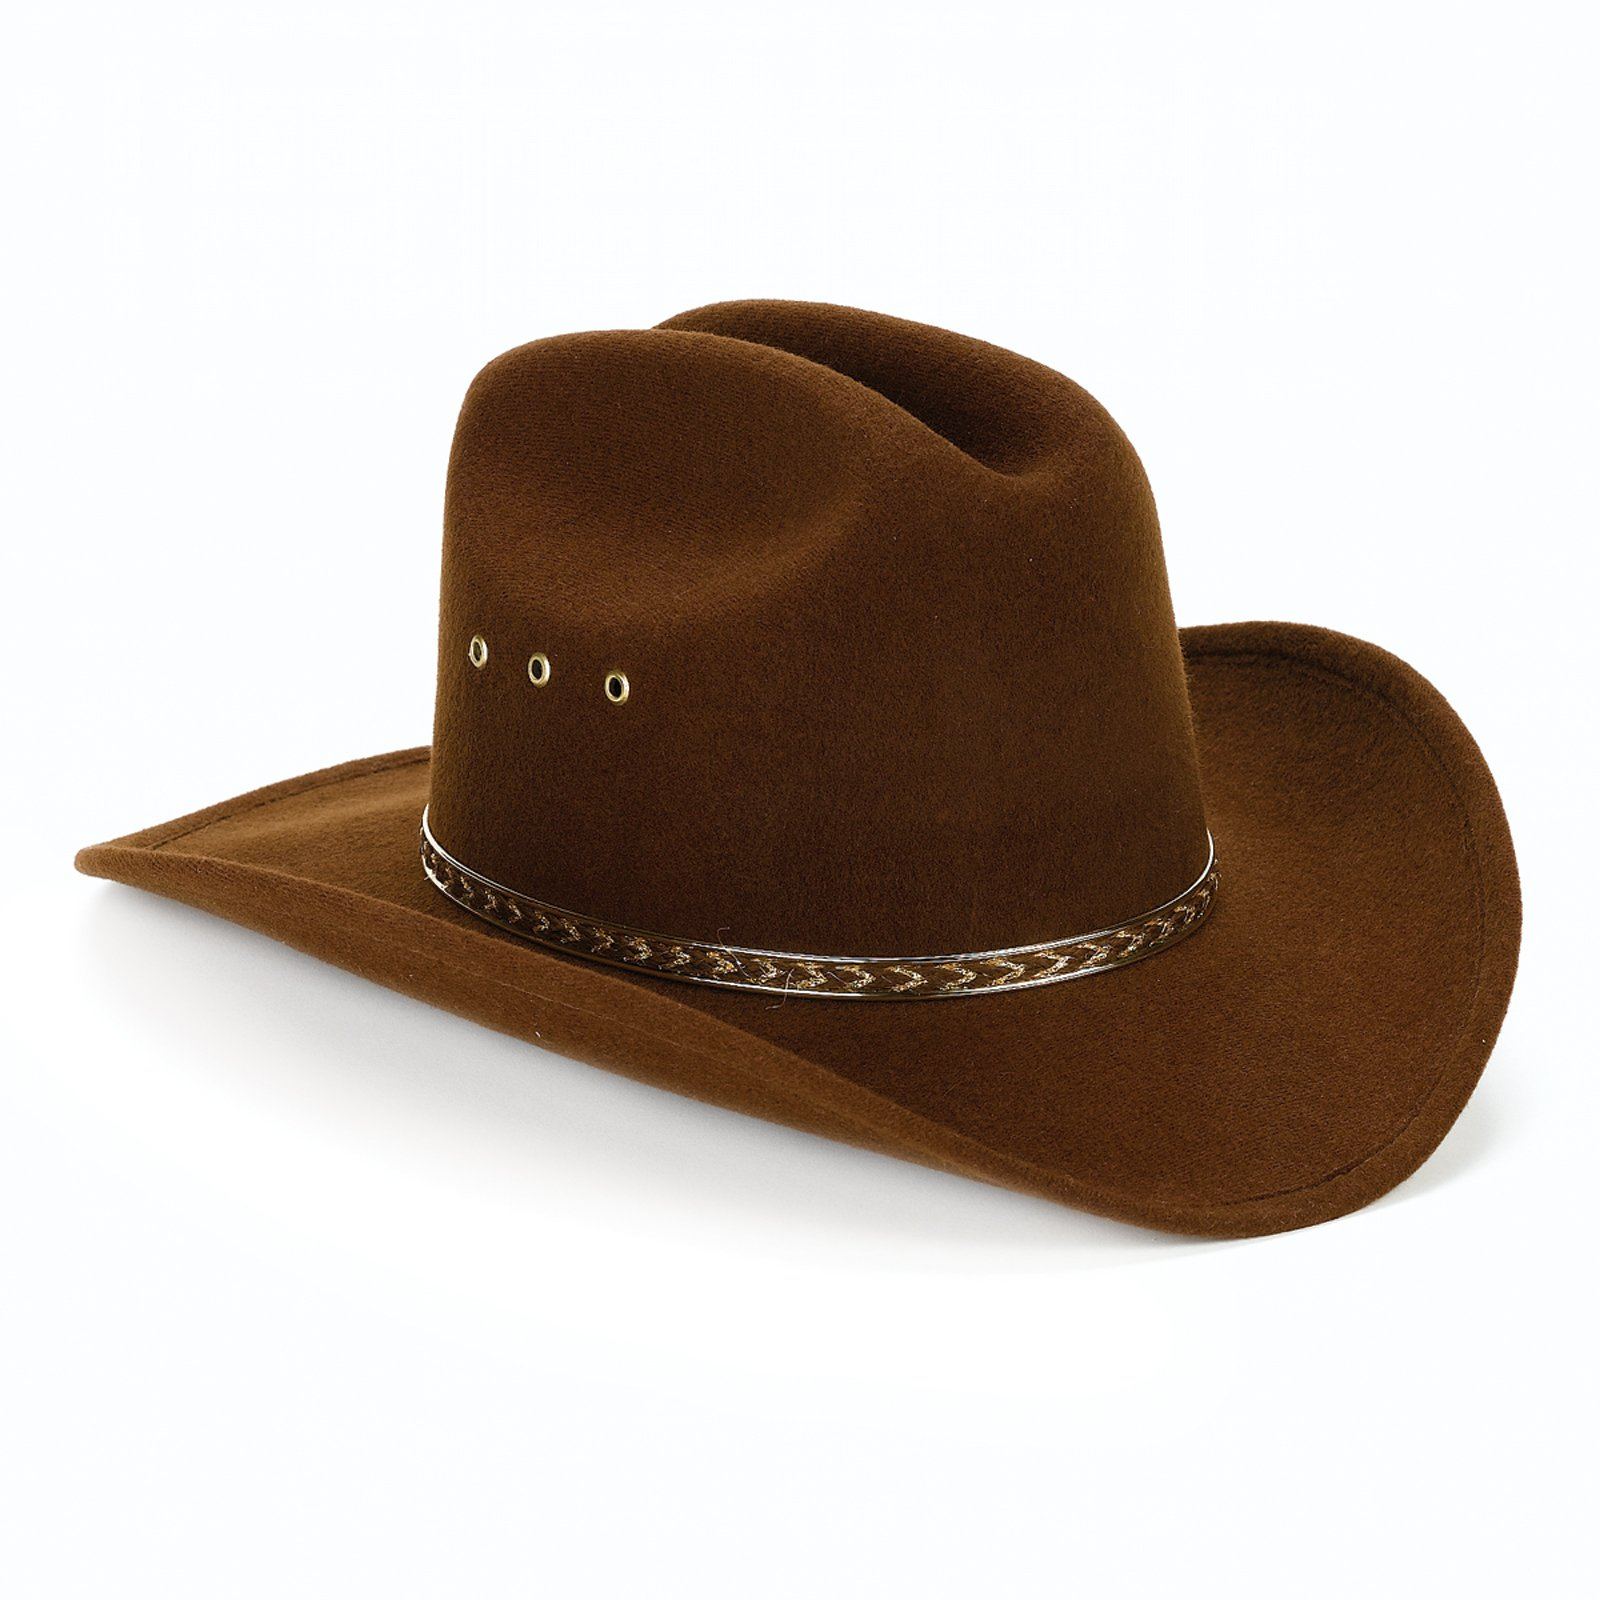 Cowboy Hat Know How. When I write a8ceb4f067a